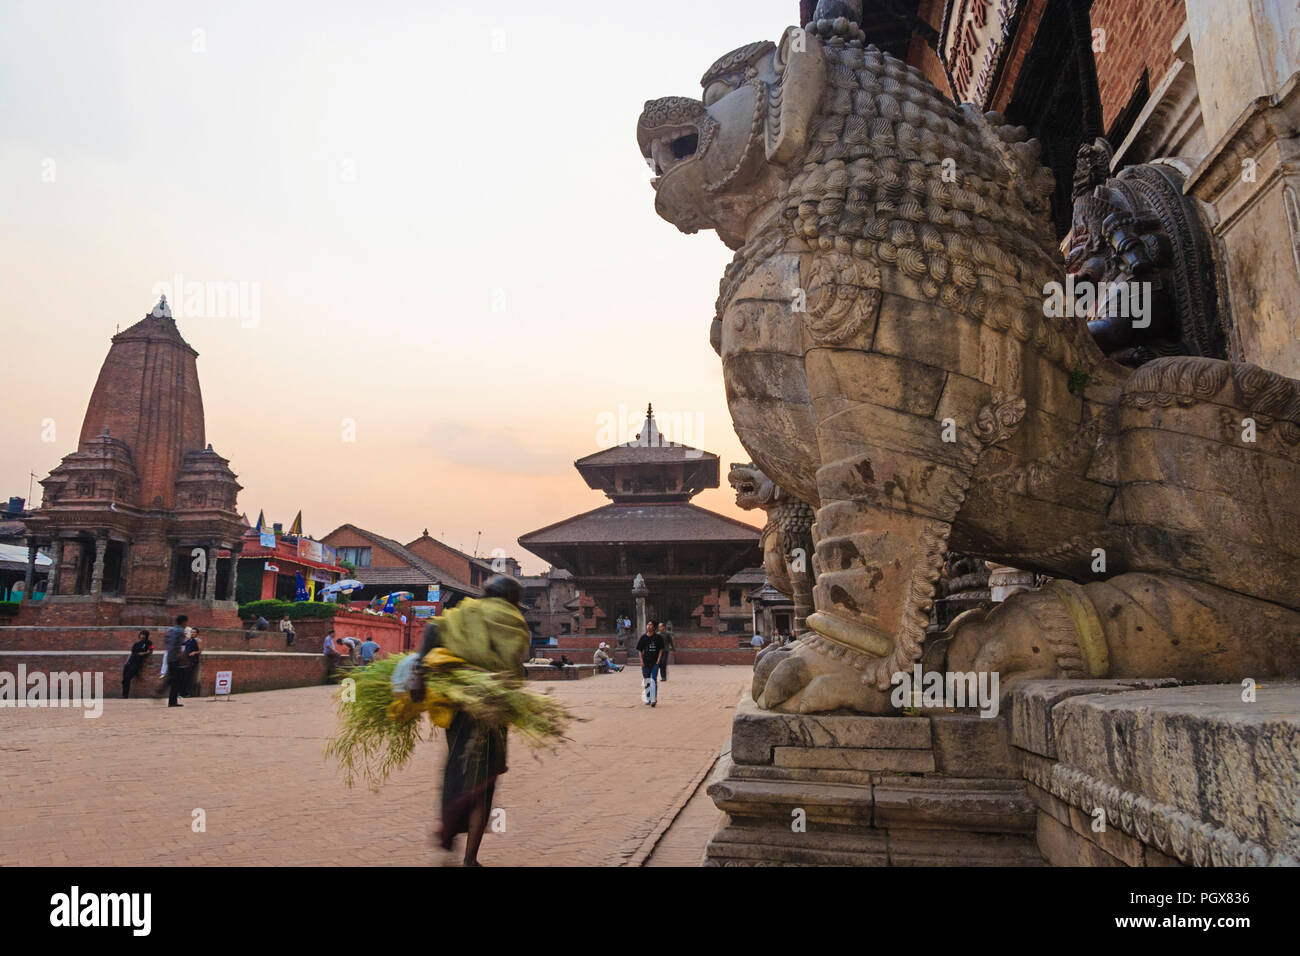 Bhaktapur, Kathmandu Valley, Bagmati, Nepal : A man walks past the lion statues outside the Royal palace at sunset in Durbar square at the Unesco Worl - Stock Image